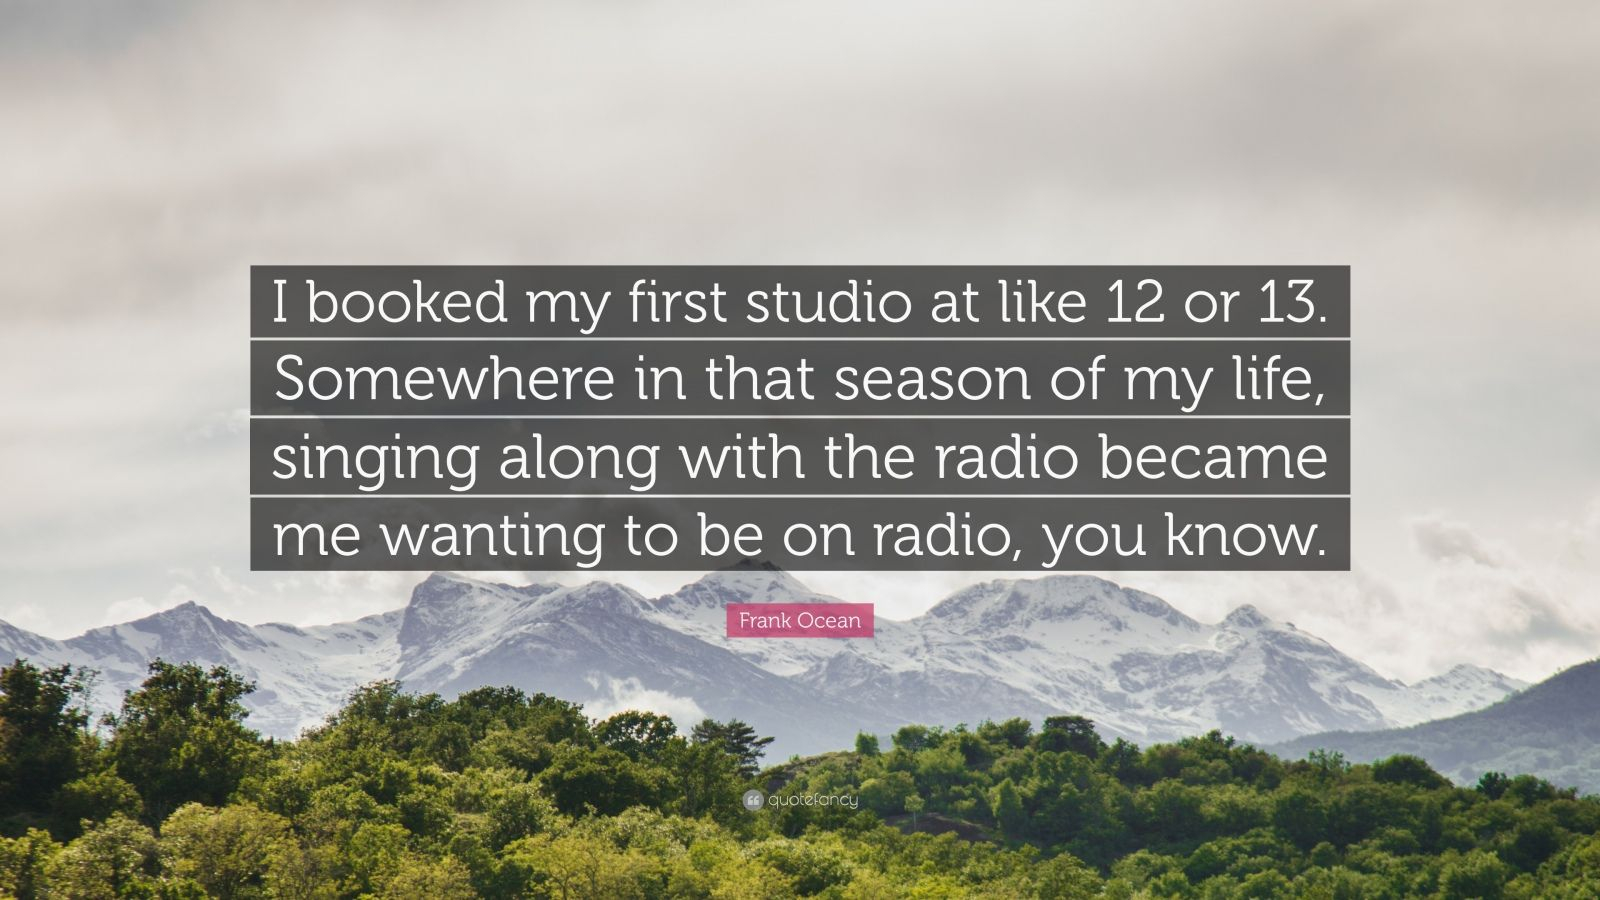 """Frank Ocean Quote: """"I booked my first studio at like 12 or 13. Somewhere in that season of my life, singing along with the radio became me wanting to be on radio, you know."""""""